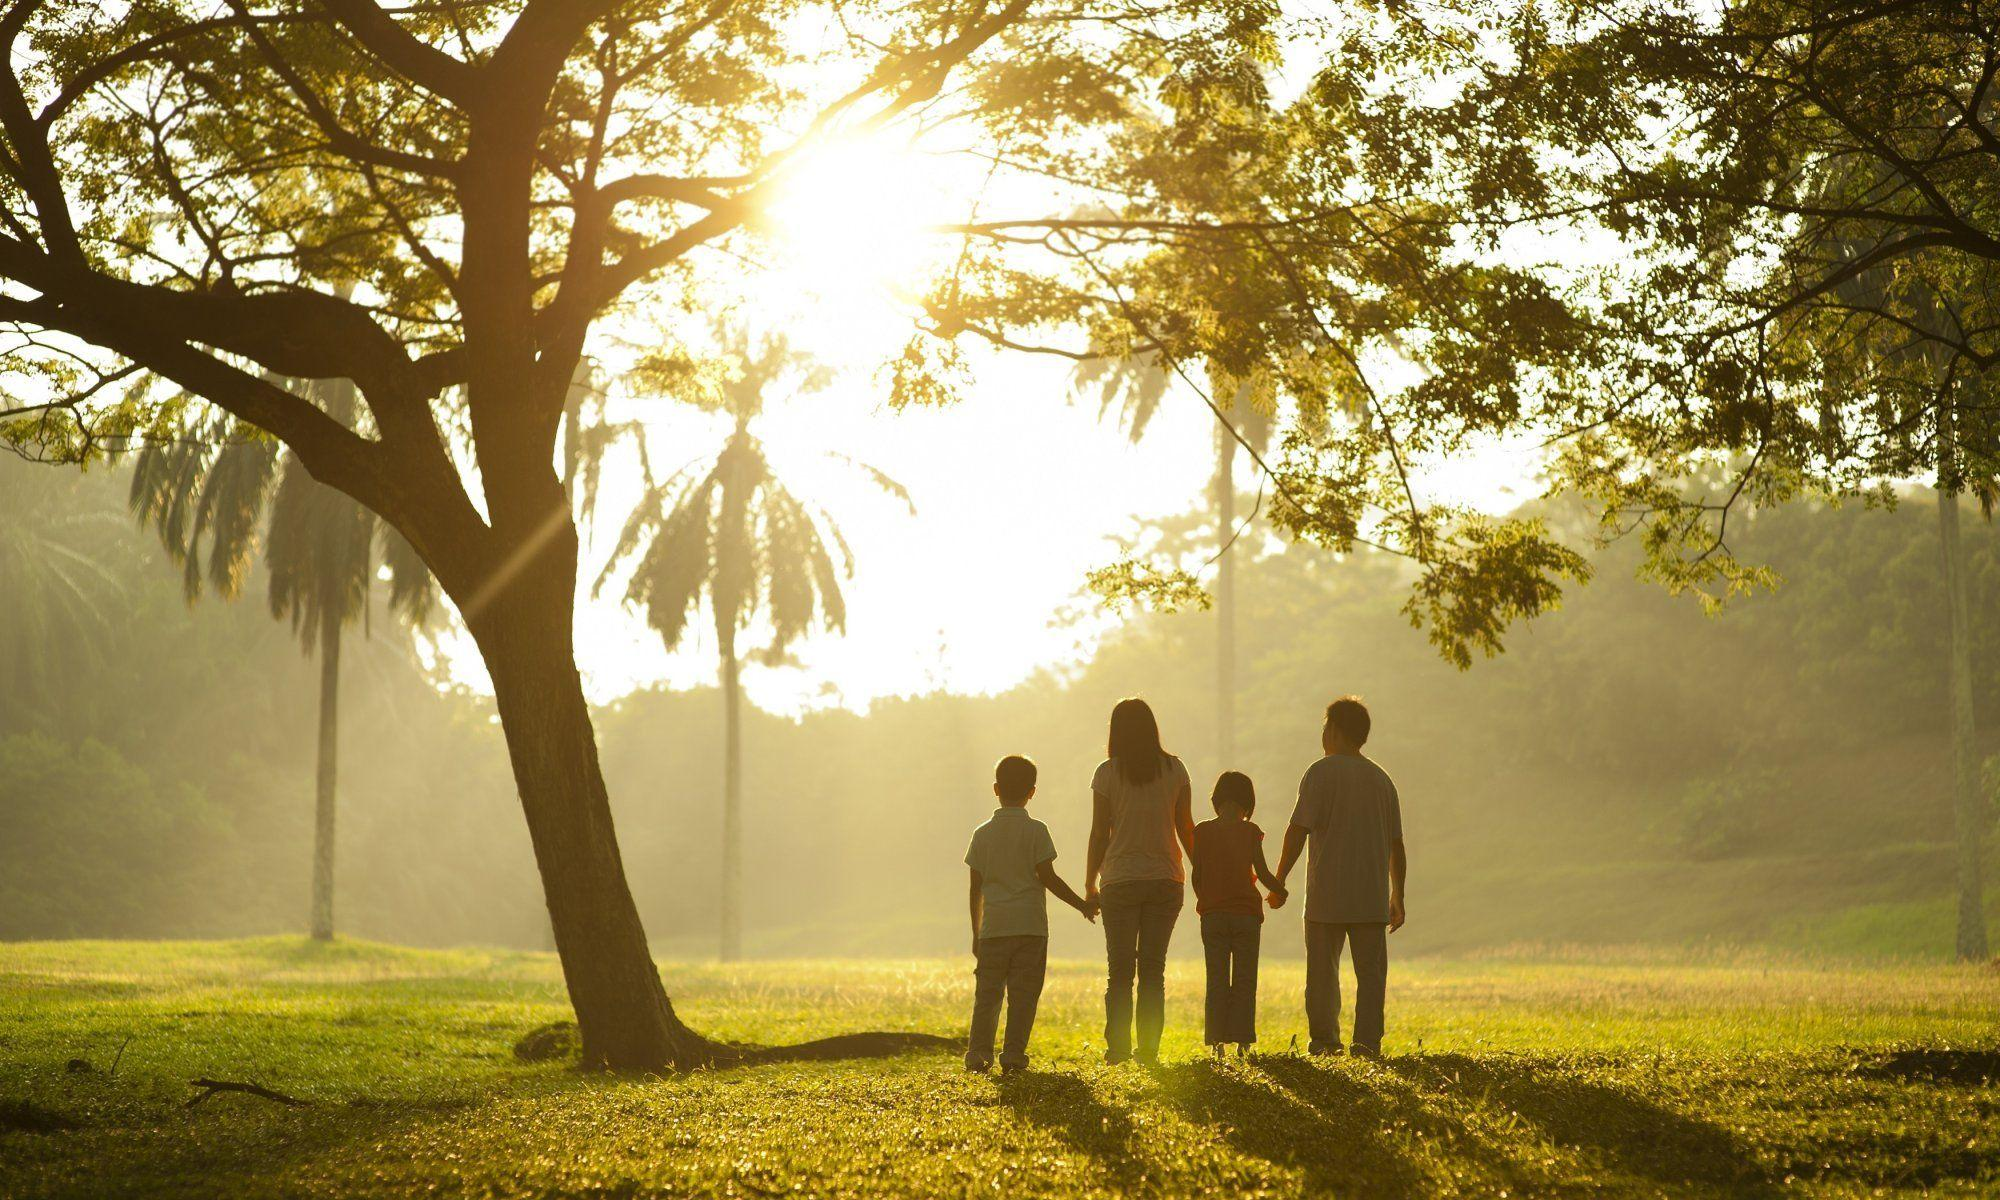 Family wallpapers best family wallpapers in high quality family